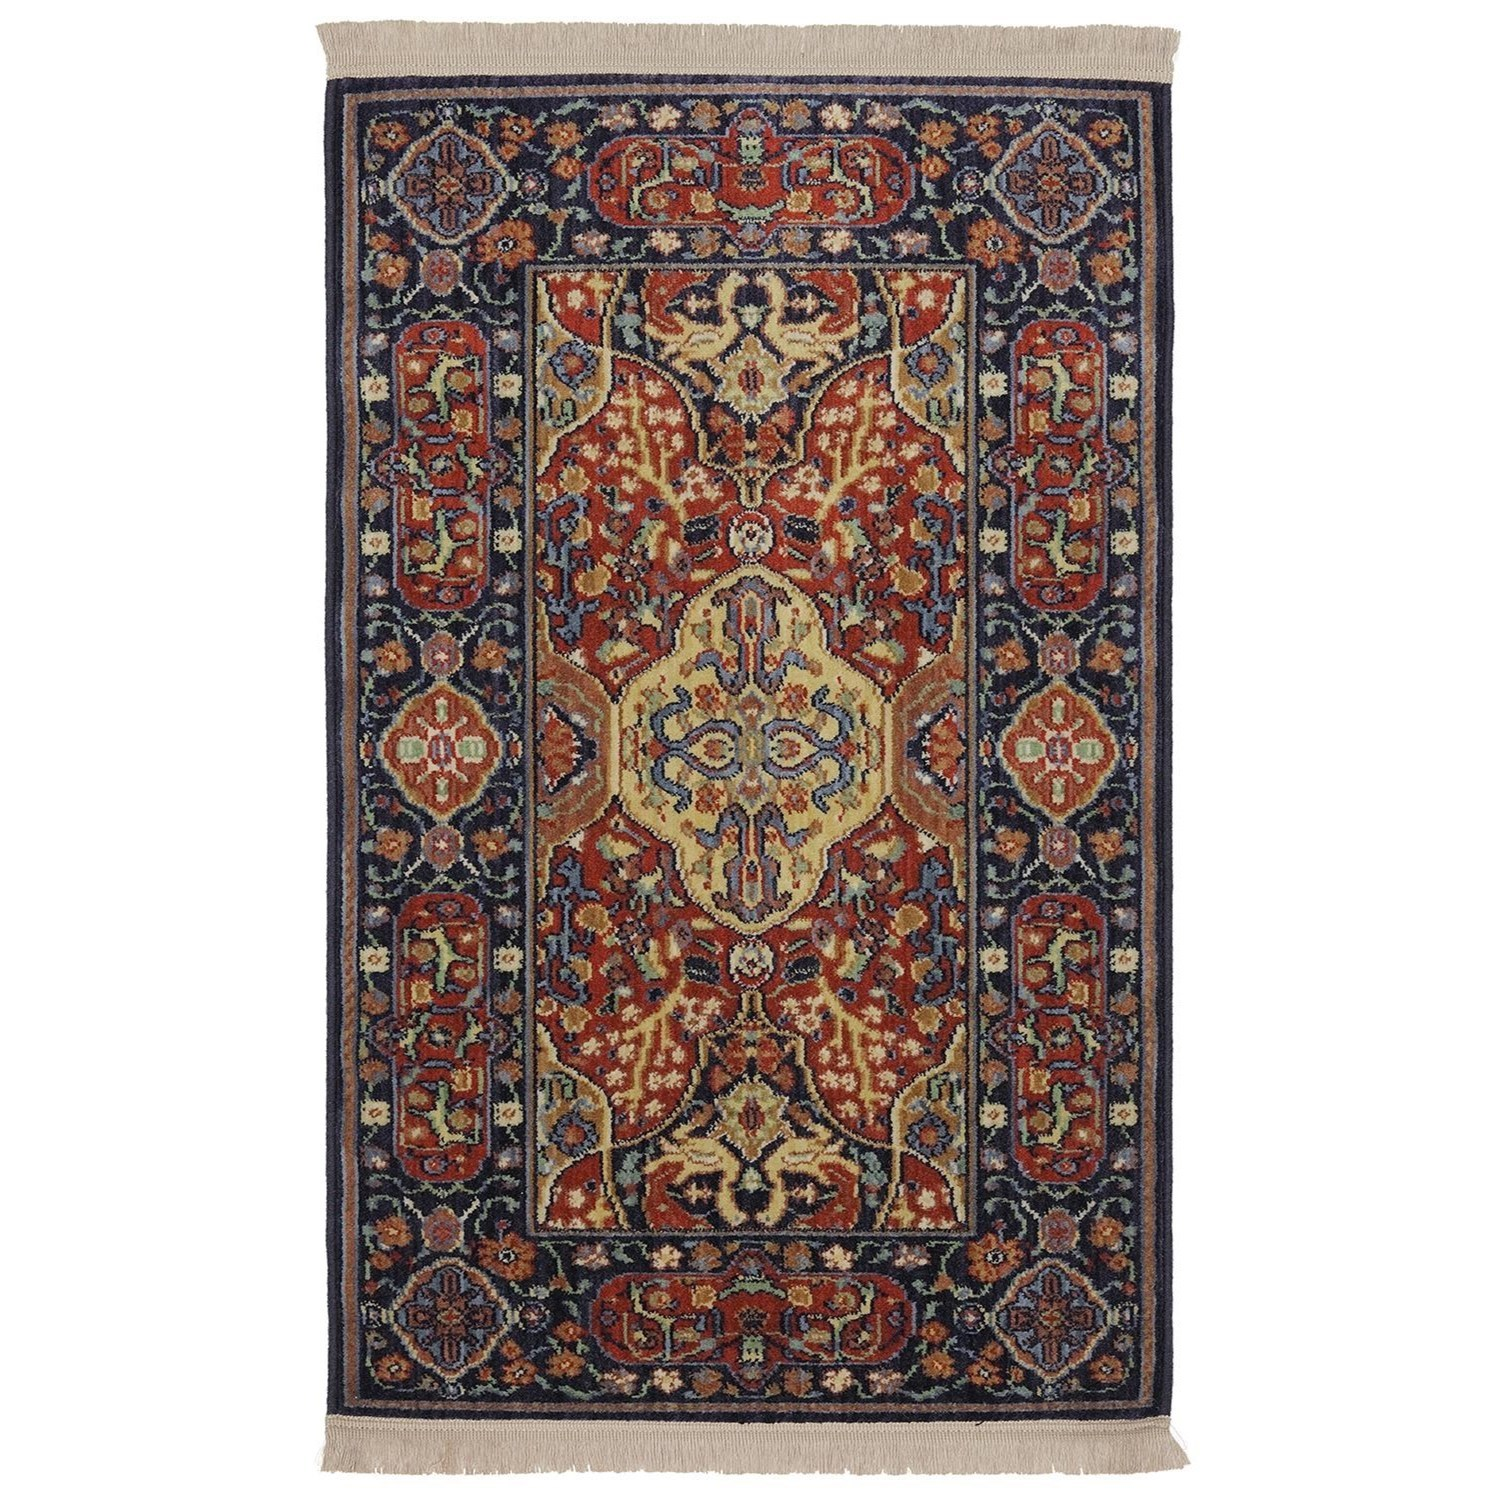 Karastan Rugs English Manor 2'6x8' Hampton Court Rug Runner - Item Number: 02120 00504 030096